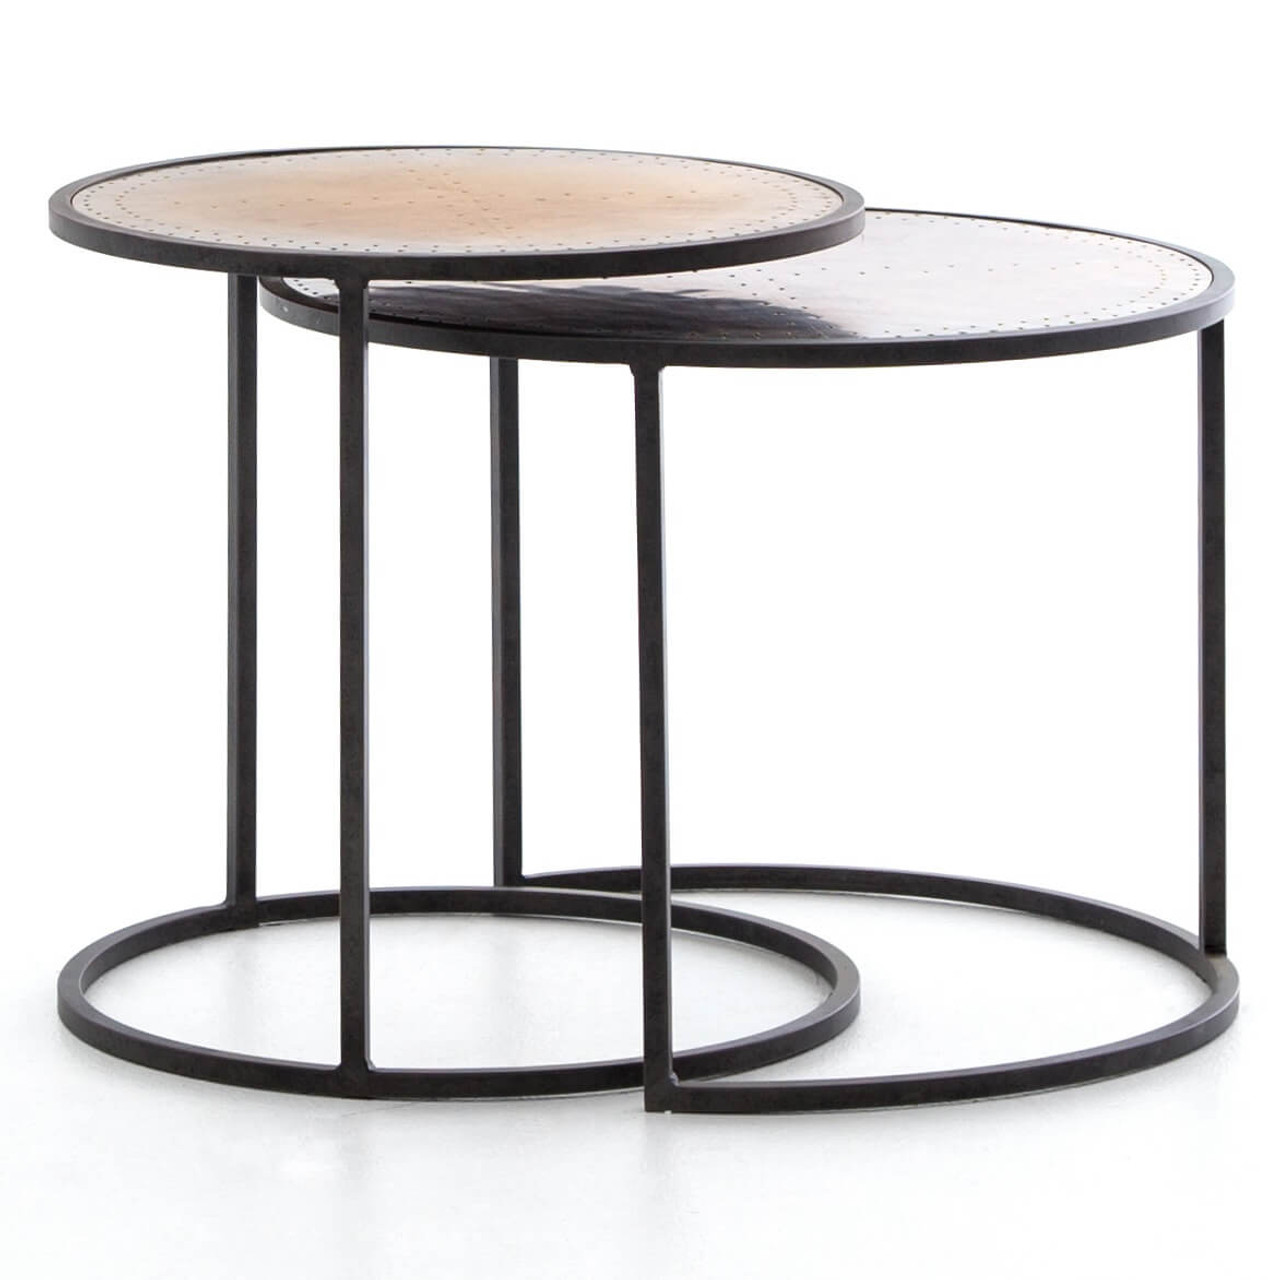 Aparte Side Table.Catalina Brass Clad Round Nesting Side Tables